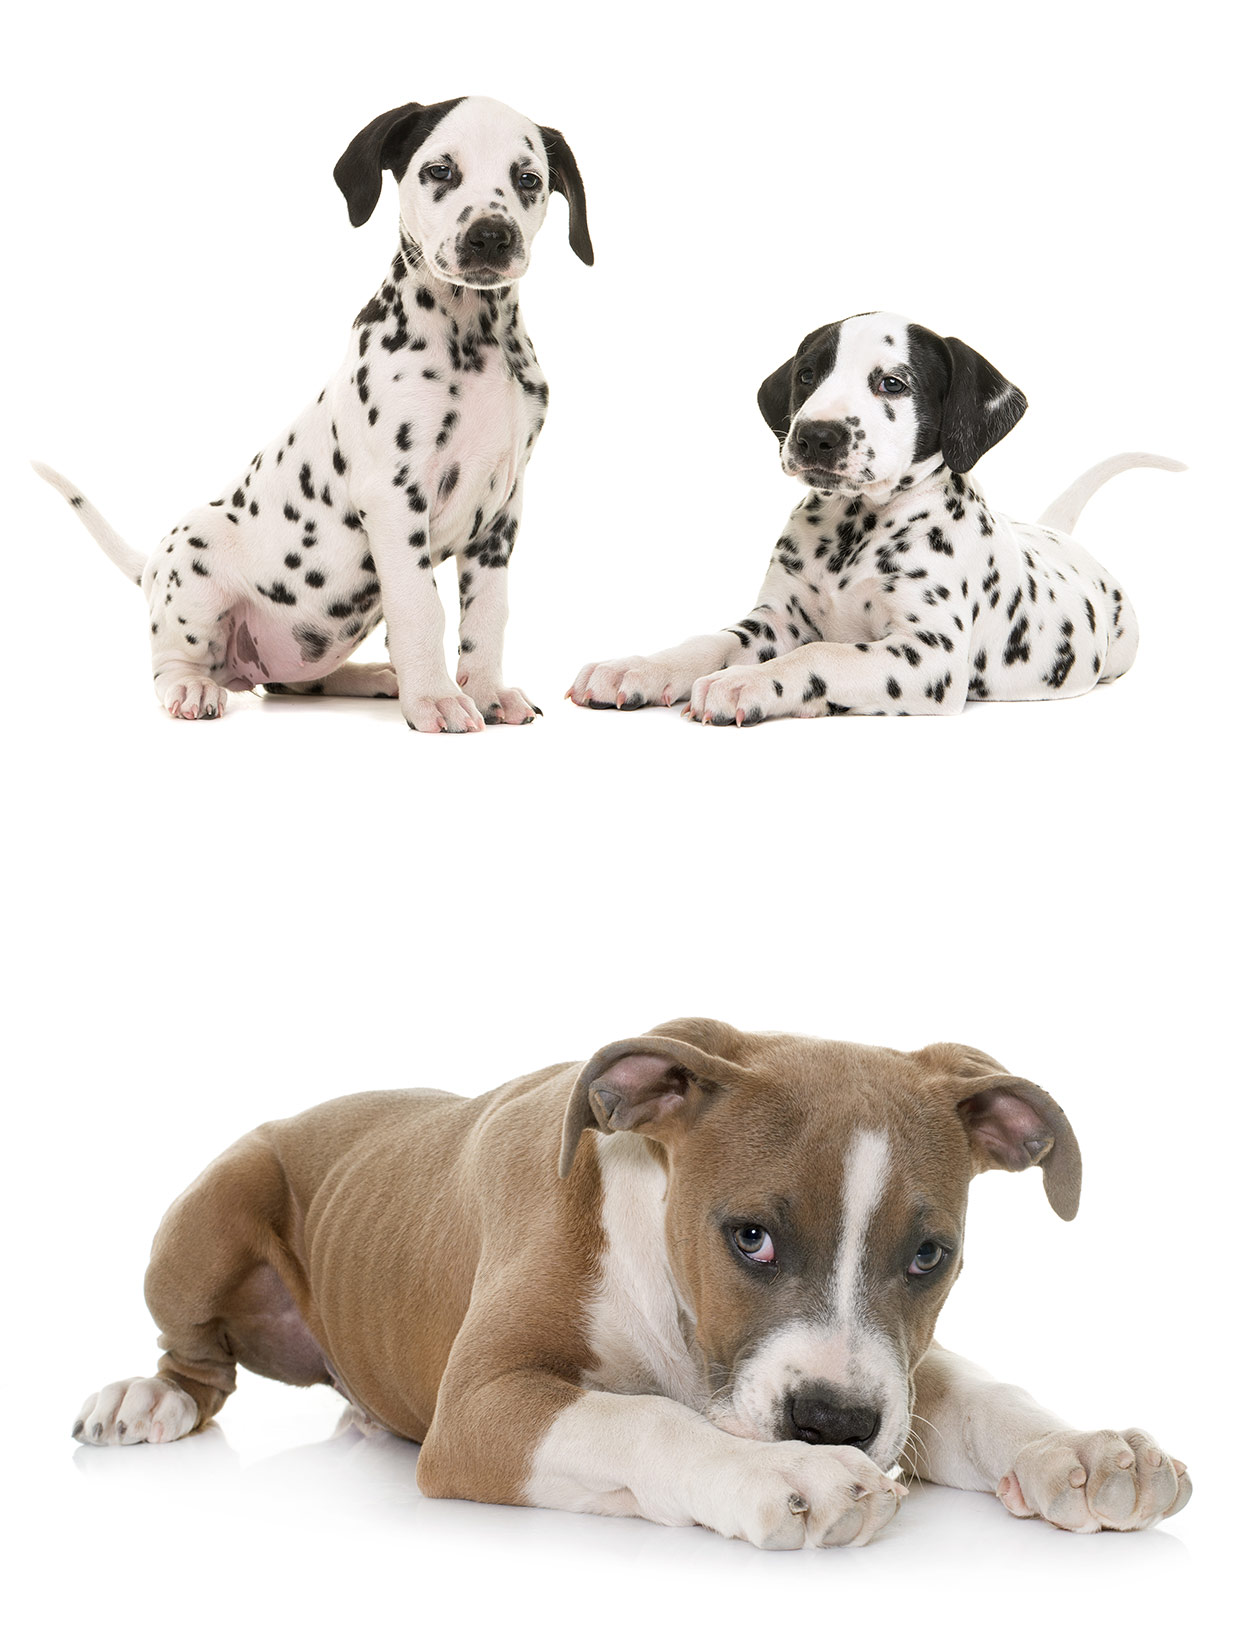 is the dalmatian pitbull mix the right pet for me